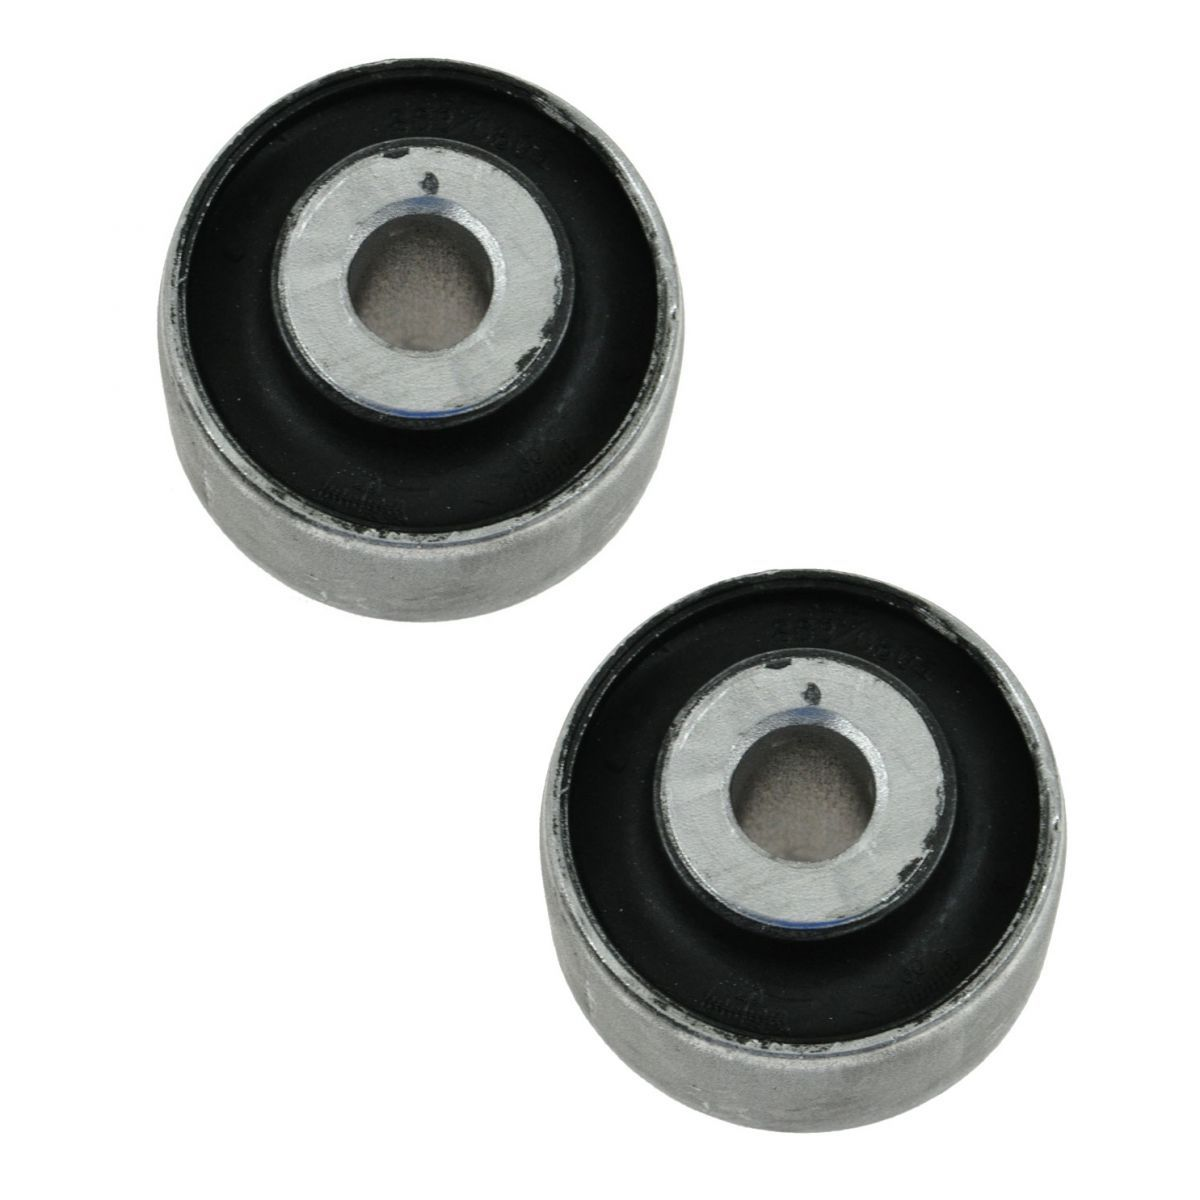 Front Lower Rearward Control Arm Bushing Pair Set of 2 for Volvo 60 70 Series